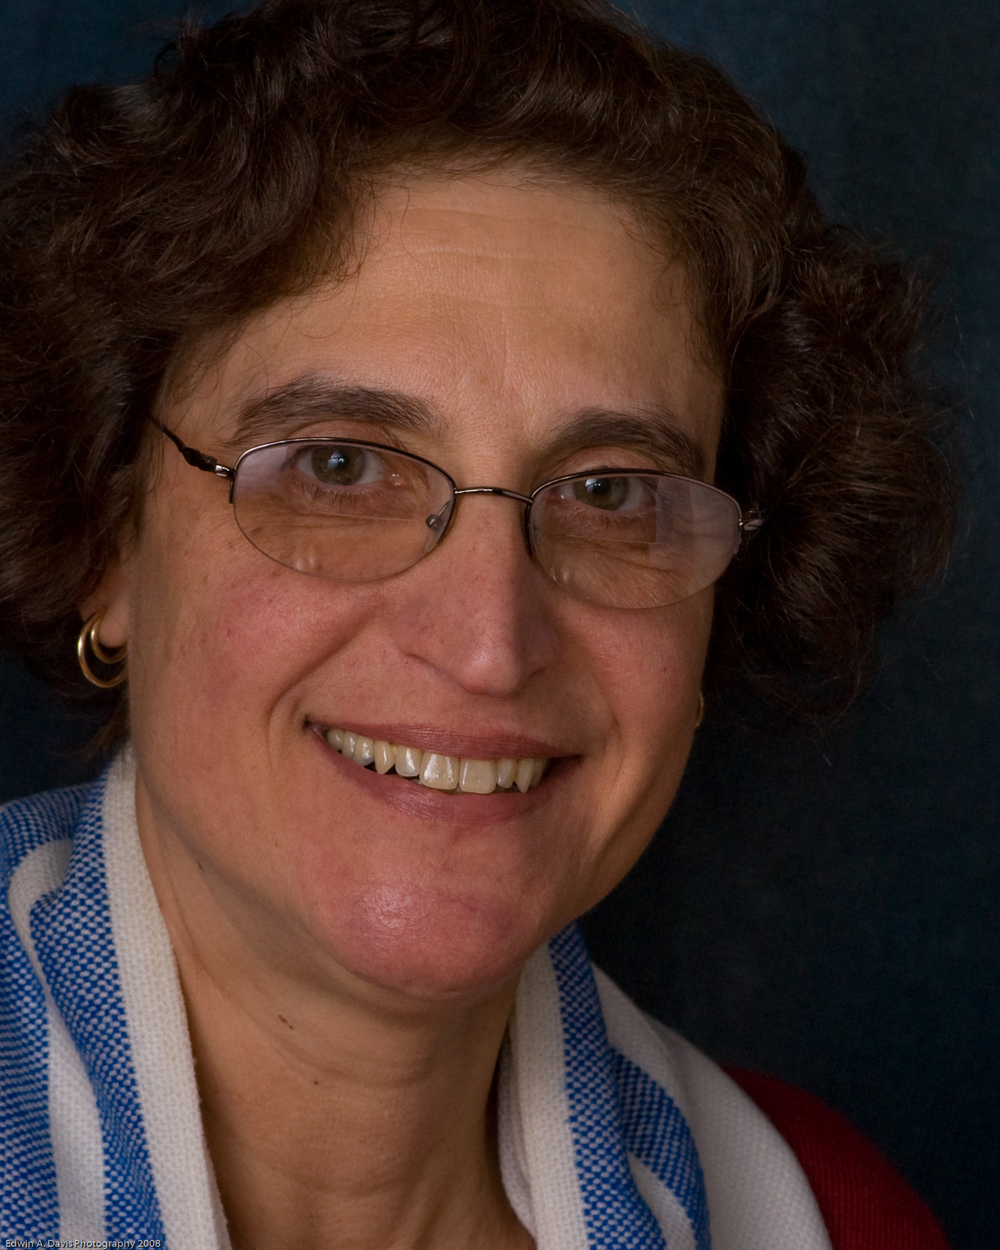 Rabbi Enid C. Lader. Credit: Edwin A. Davis Photography.